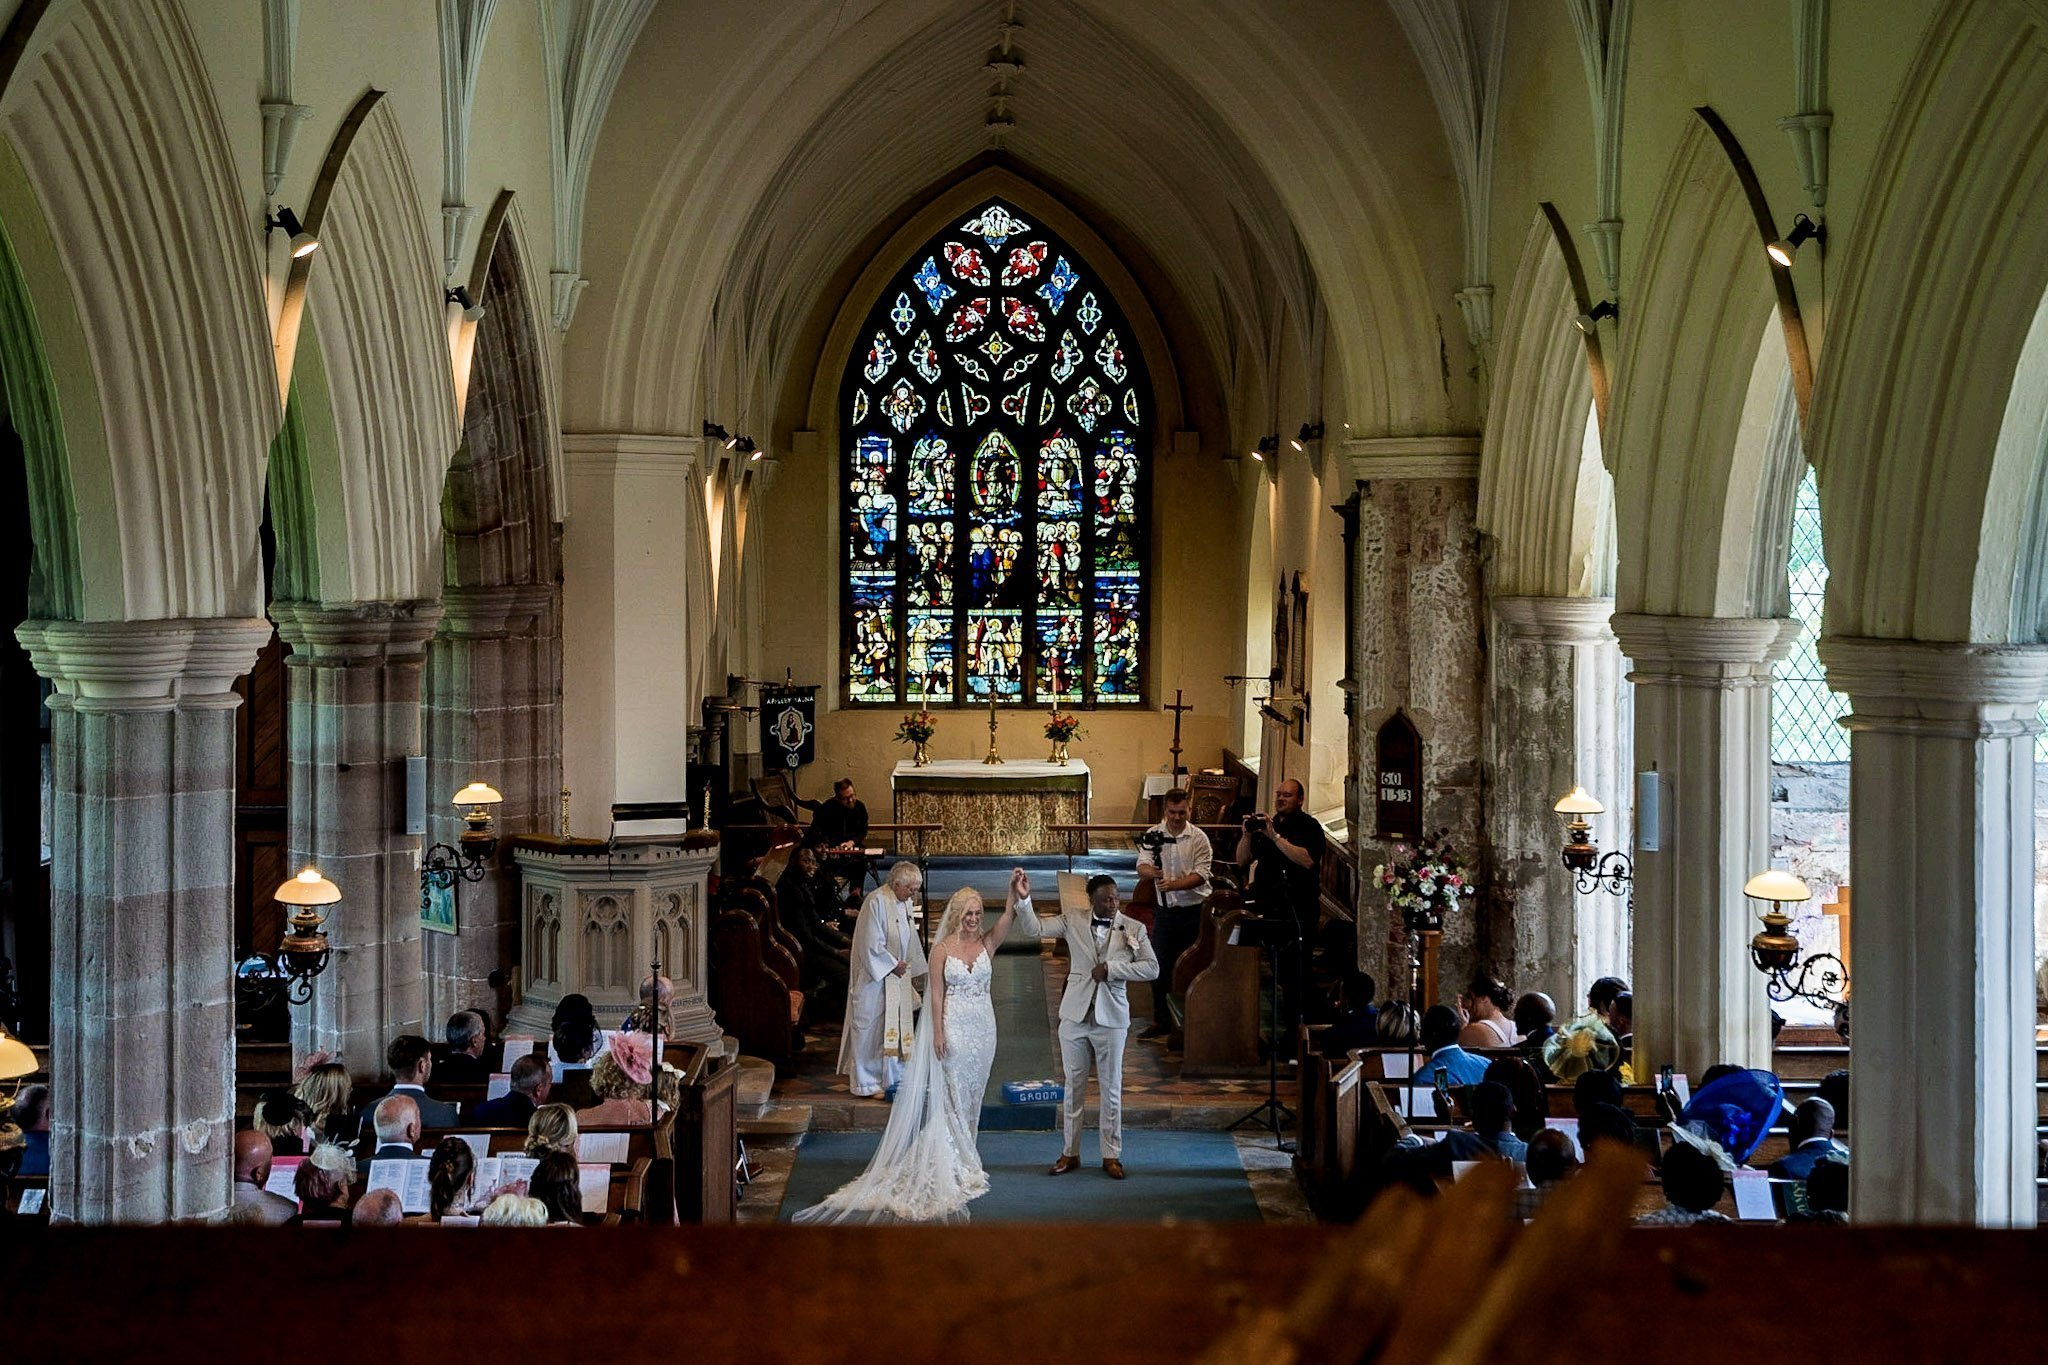 Your Favourite Frame YFFUK Mwasuku St Michaels Church Appleby Magna bride and groom raising their hands held together in the air to salute their guests and their vows top down view from the balcony